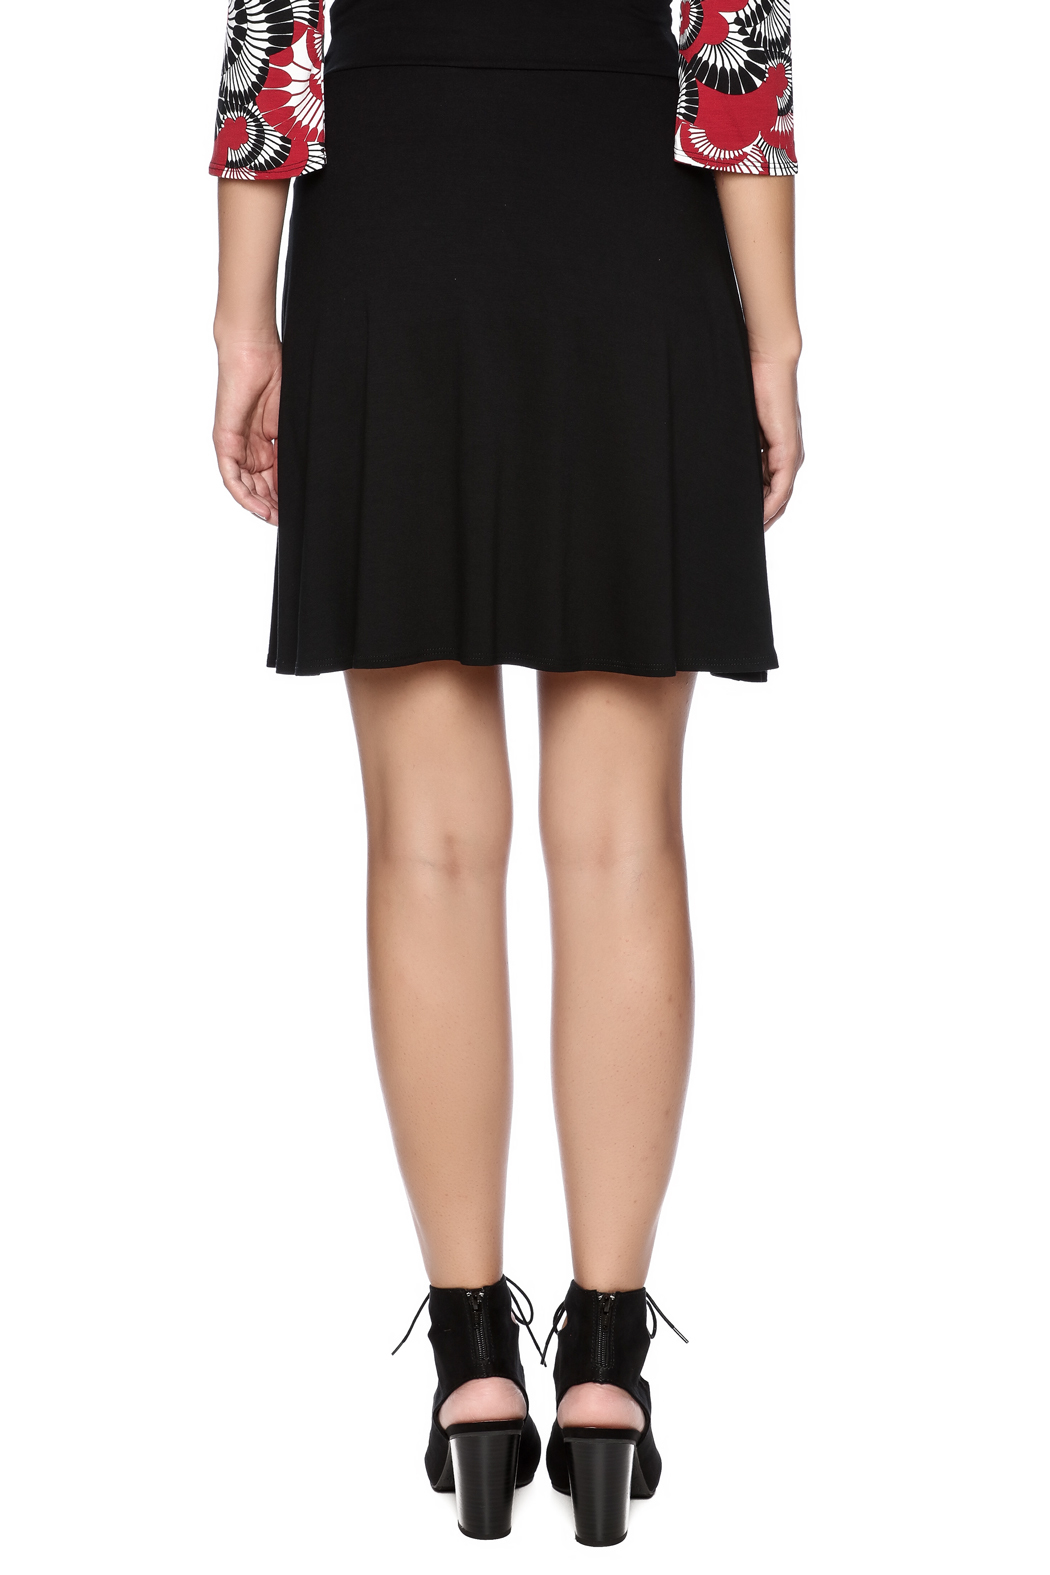 salaam Black Short Flippy Skirt - Back Cropped Image